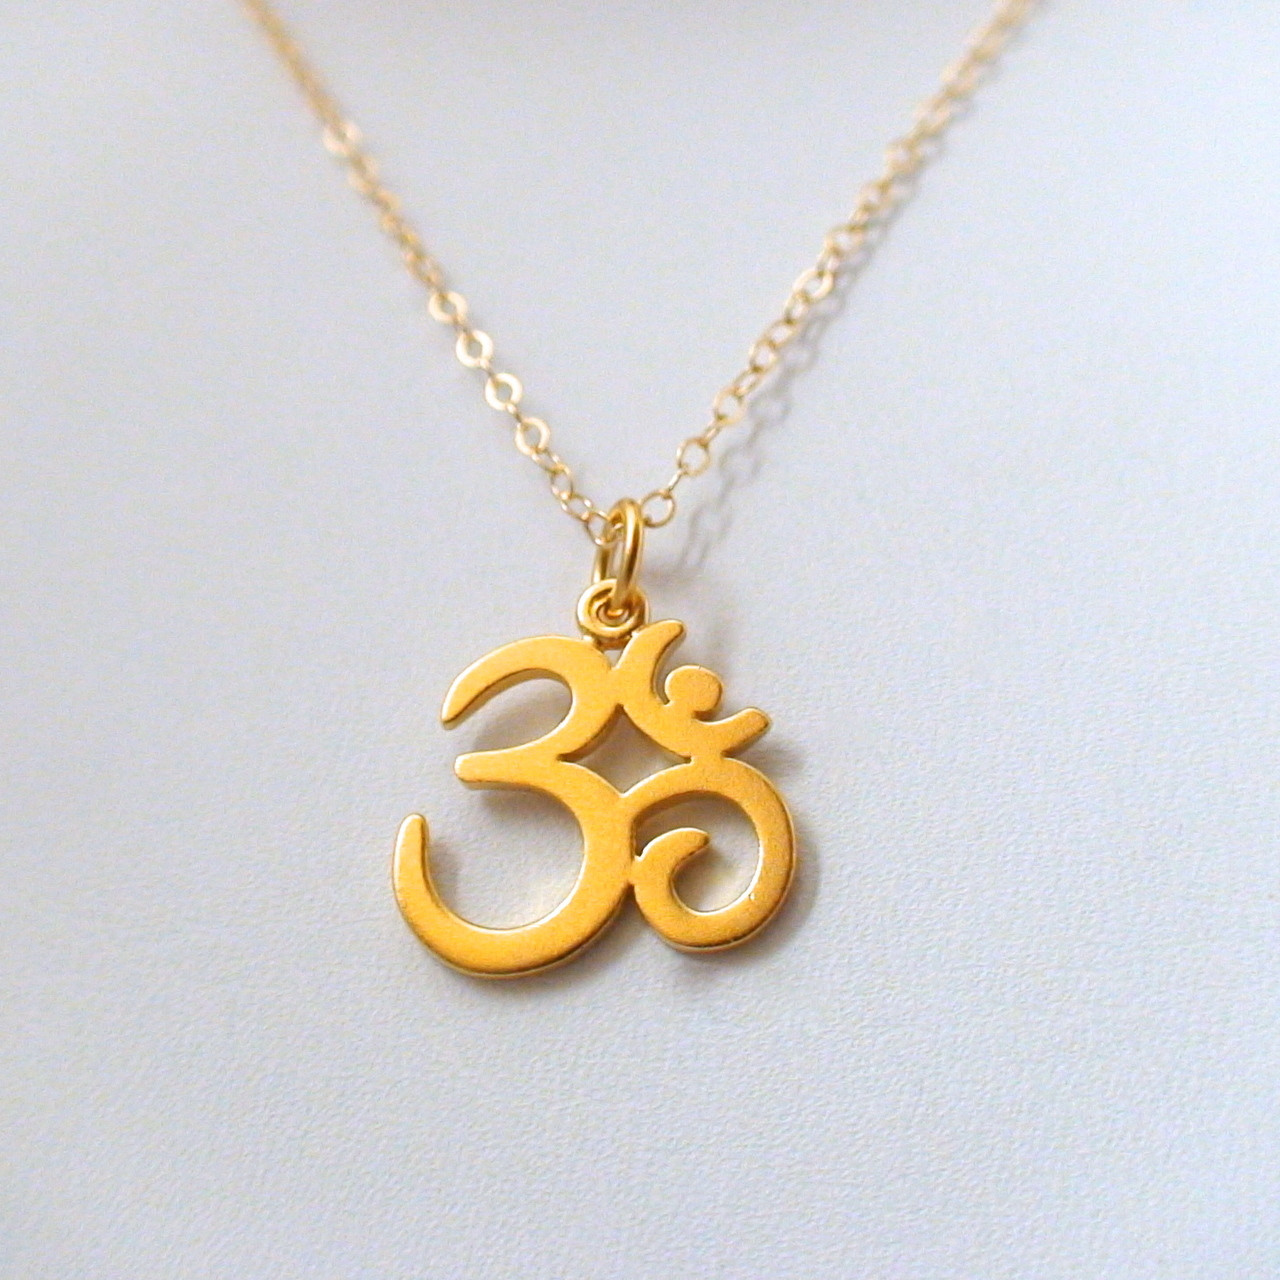 ohm necklace 24k gold plated sterling silver